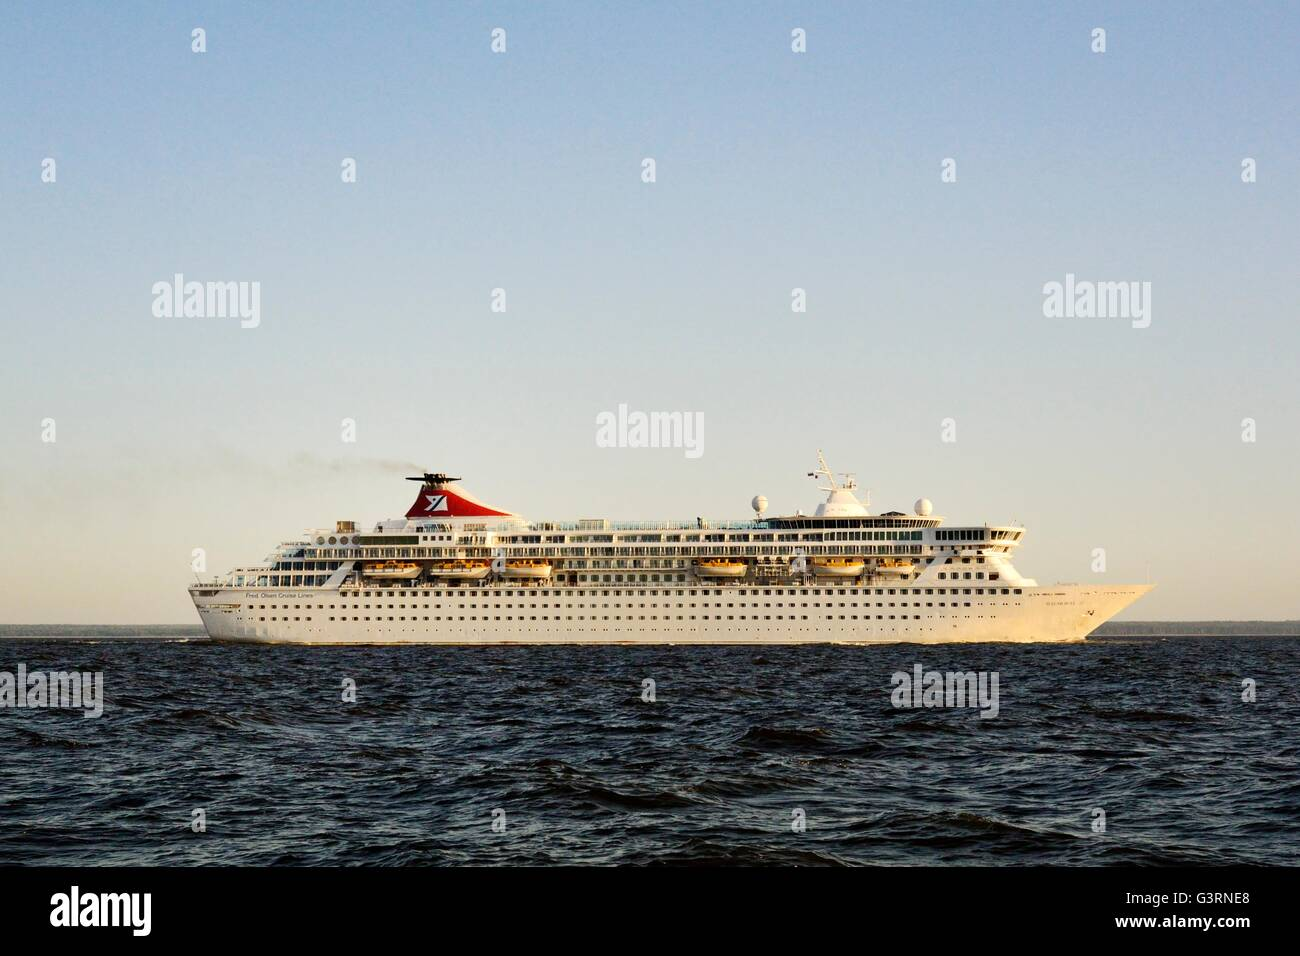 Russia. Fred Olsen ocean cruise ship Balmoral outbound from Saint Petersburg in the Gulf of Finland. Summer - Stock Image